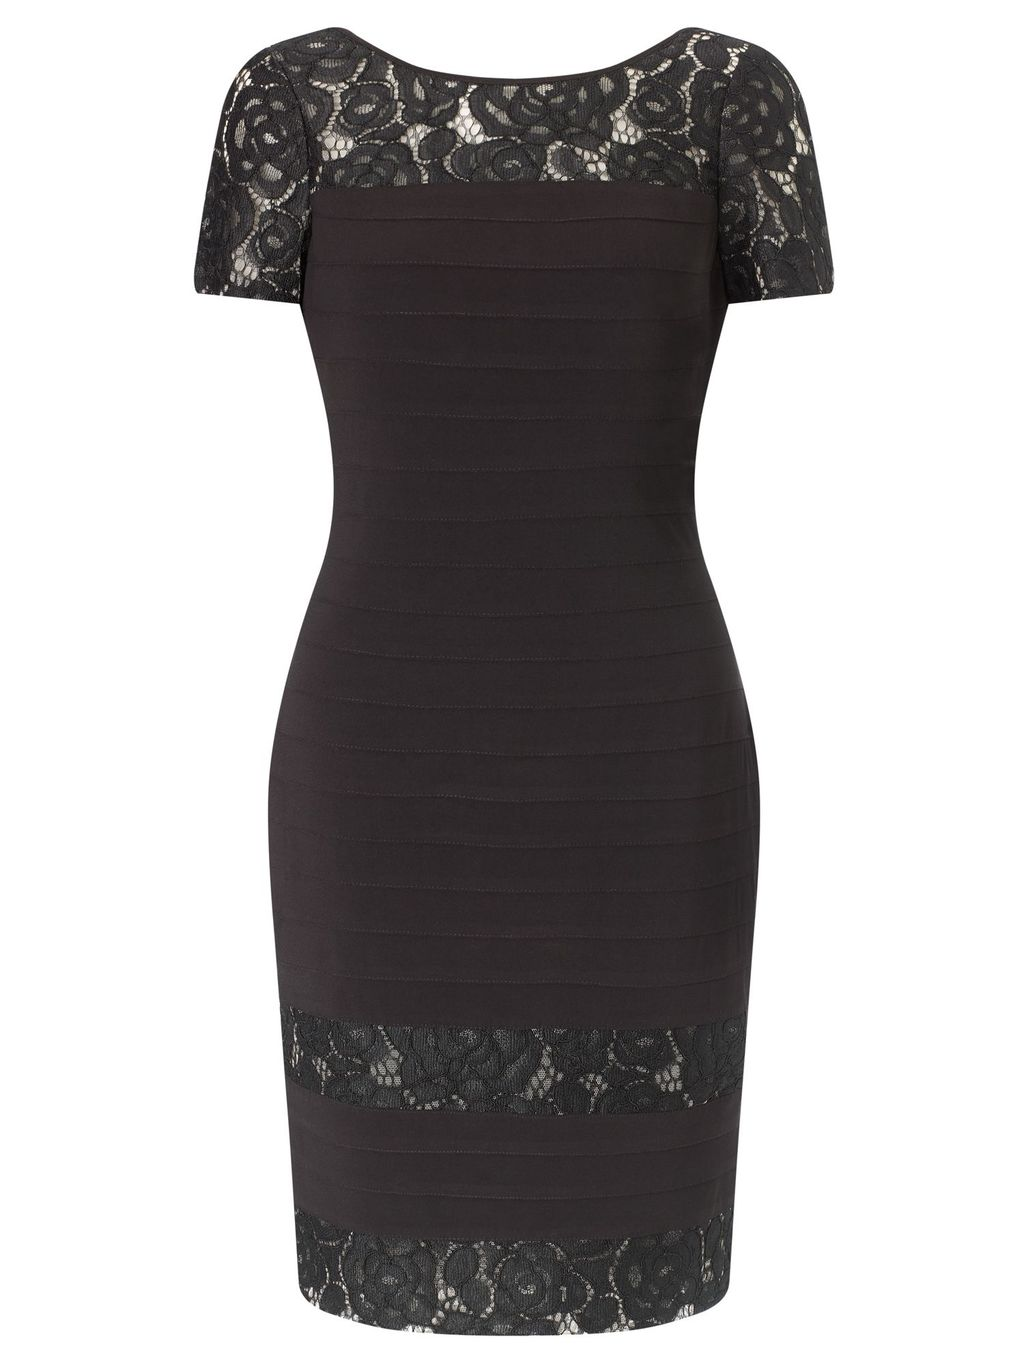 Short Sleeve Lace Bandeau Dress, Black - style: shift; neckline: round neck; predominant colour: black; occasions: evening; length: just above the knee; fit: body skimming; fibres: polyester/polyamide - stretch; sleeve length: short sleeve; sleeve style: standard; texture group: lace; pattern type: fabric; pattern: patterned/print; embellishment: lace; season: a/w 2015; wardrobe: event; embellishment location: shoulder